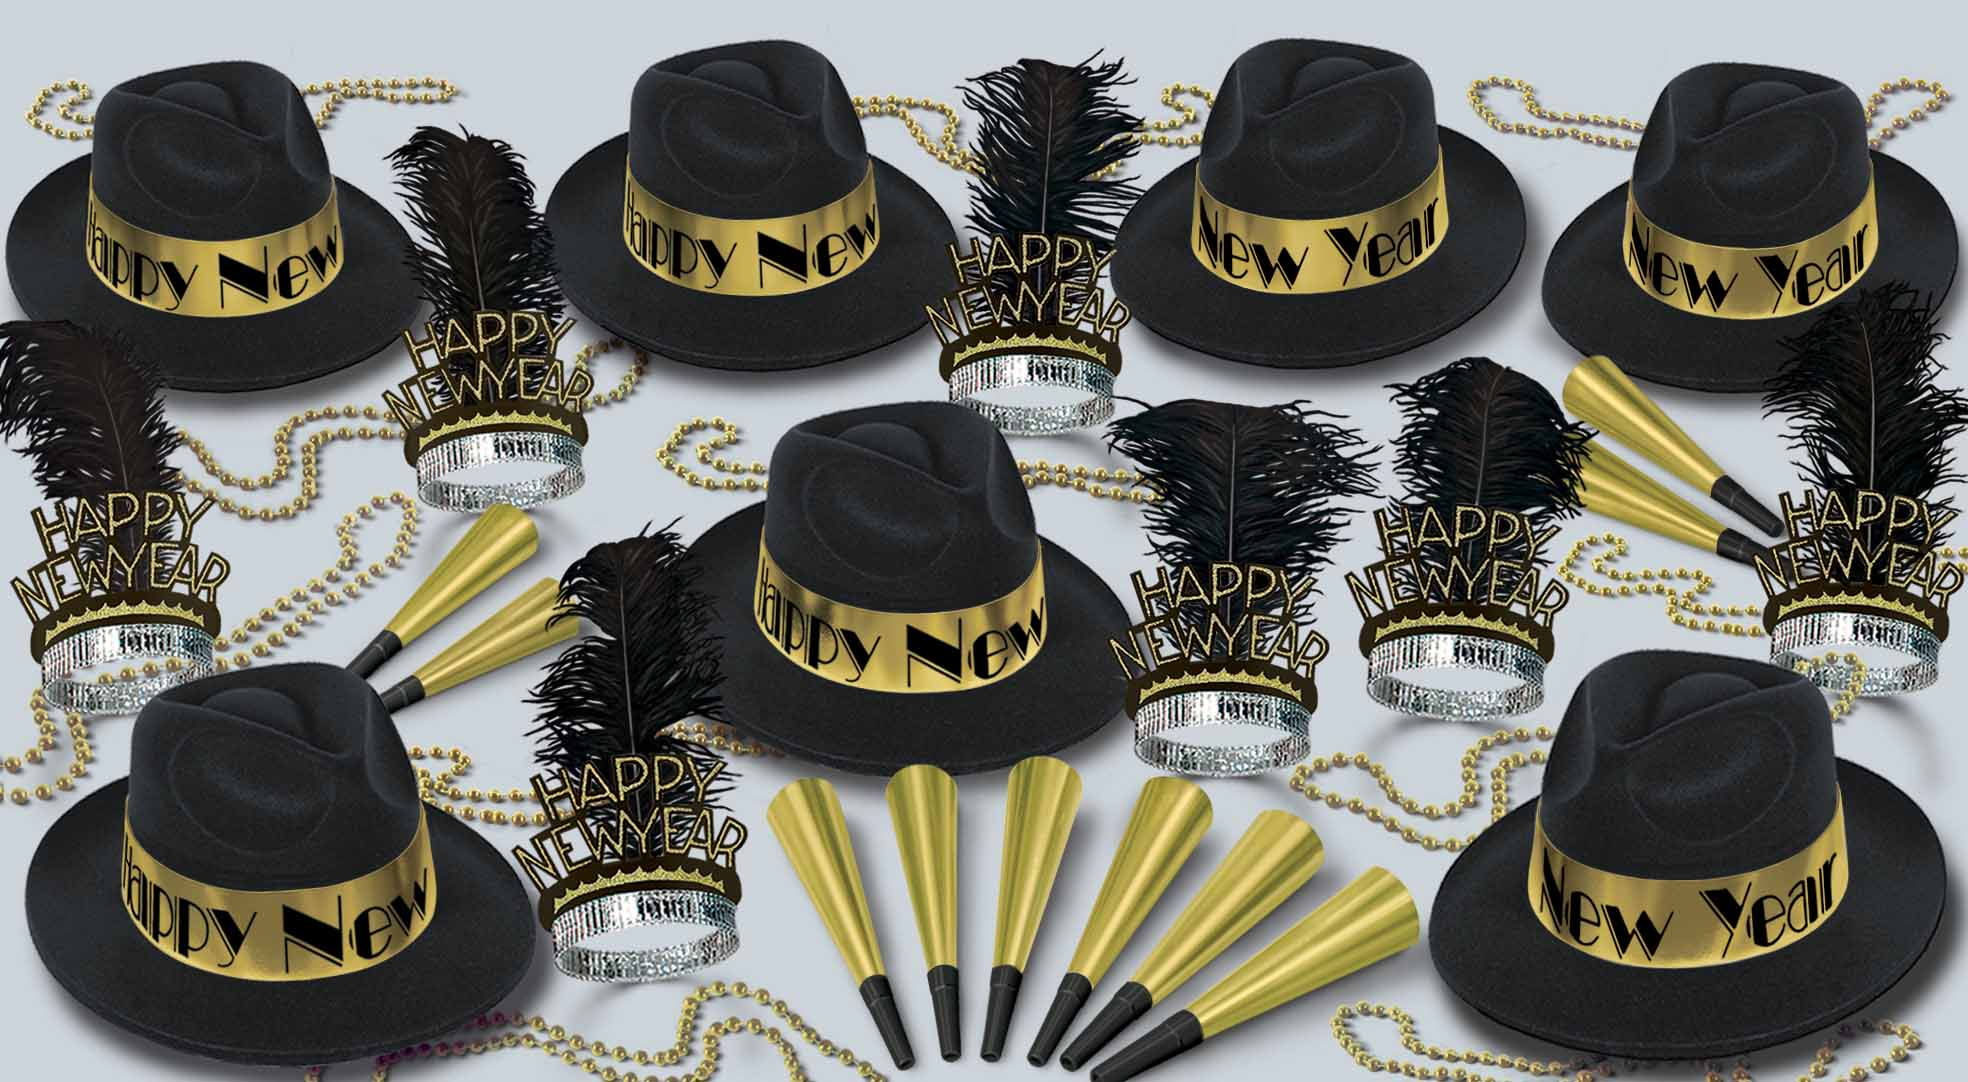 Touch Of Gold Assortment for 50 Touch of Gold, New Years Eve, NYE, Party Favors, Party Supplies, Black and Gold, Party Decor, Wholesale, Inexpensive party, Bulk packs, Hats, Horns, Tiaras, Beads, Decorations, Cheap, Gold, Balloons